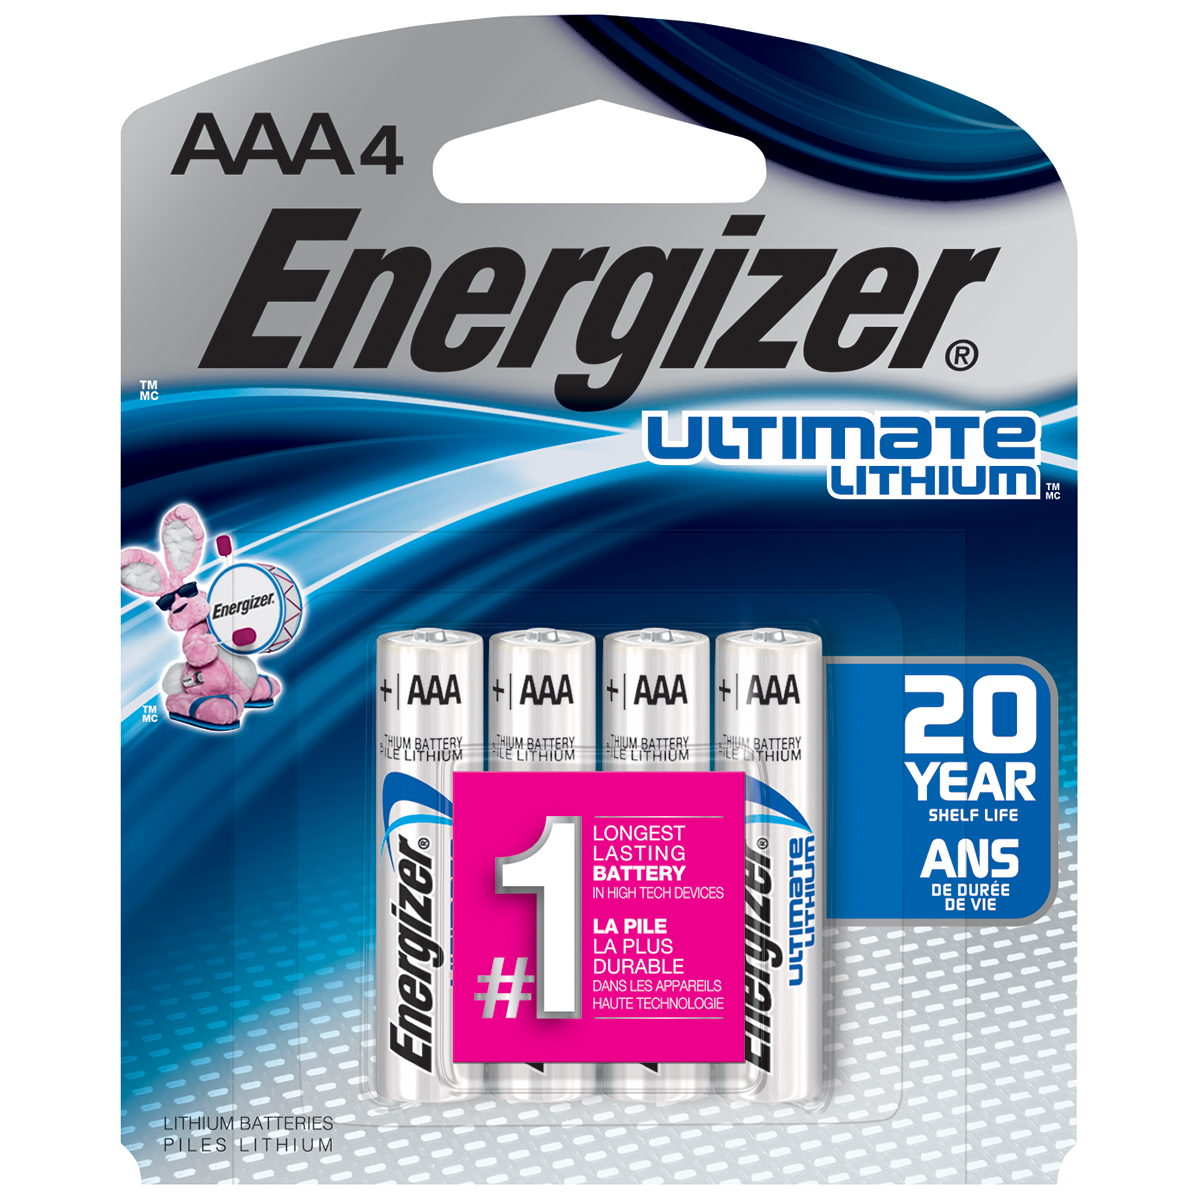 Energizer Ultimate Lithium AAA Batteries, 4 Count